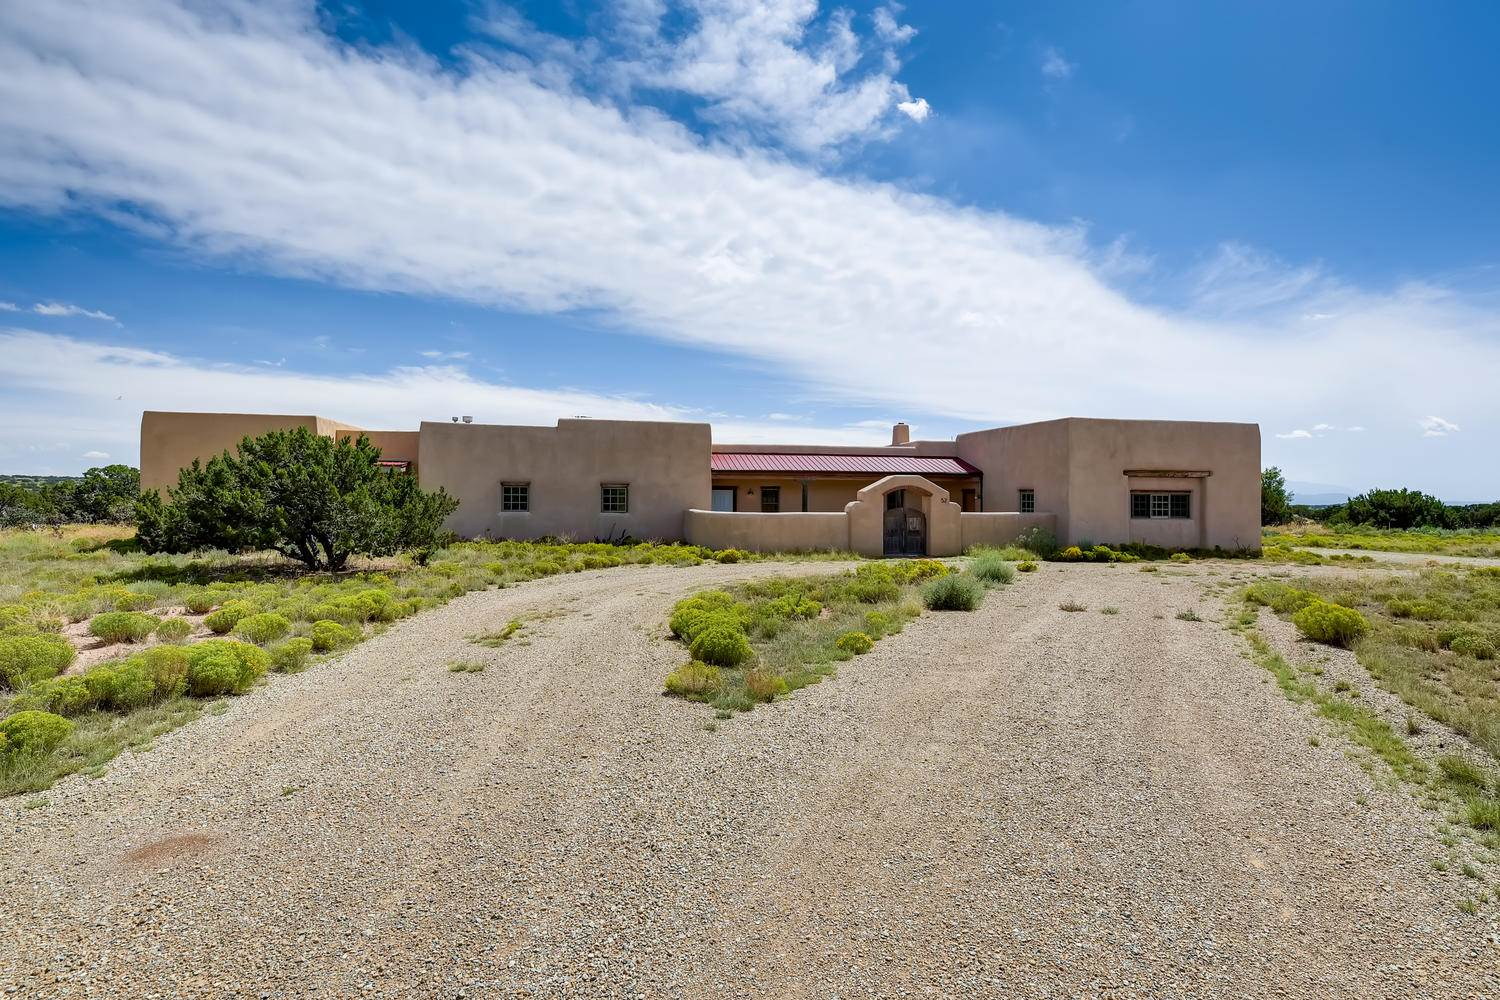 Light, bright, and inviting 3 bedroom/3-bath home on 4.5 acres with Southern views.  This single-level, pueblo-style home offers a 2,082 square feet open-concept floor plan with an attached 2-car garage. Weathered, wooden doors open to an enclosed courtyard, a stone path leading to the cheerful front portal.  A large living space opens before you, bathed in natural light, where the formal dining area, adjoining kitchen, and living room, (with corner kiva fireplace), create the perfect flow for guests. A delicate balance of old world charm, simplicity, and function are achieved in this enchanting home. Large vigas accent the high ceilings, richly textured walls offer warmth and maintain a pleasant interior temperature, while glazed brick floors throughout this authentic adobe home anchor your senses. The master suite with its own kiva fireplace and private outdoor patio offers a quiet refuge from this rugged high desert tapestry. Updated appliances, quartz countertops, rich wood cabinetry, and built-in shelving further enhance the thoughtful design. The energy-efficient adobe construction also features a new 665 square foot studio/office wing with separate entrance. This idyllic setting is the perfect balance of country living, a peaceful work place, and proximity to amenities within a short drive of downtown Santa Fe.